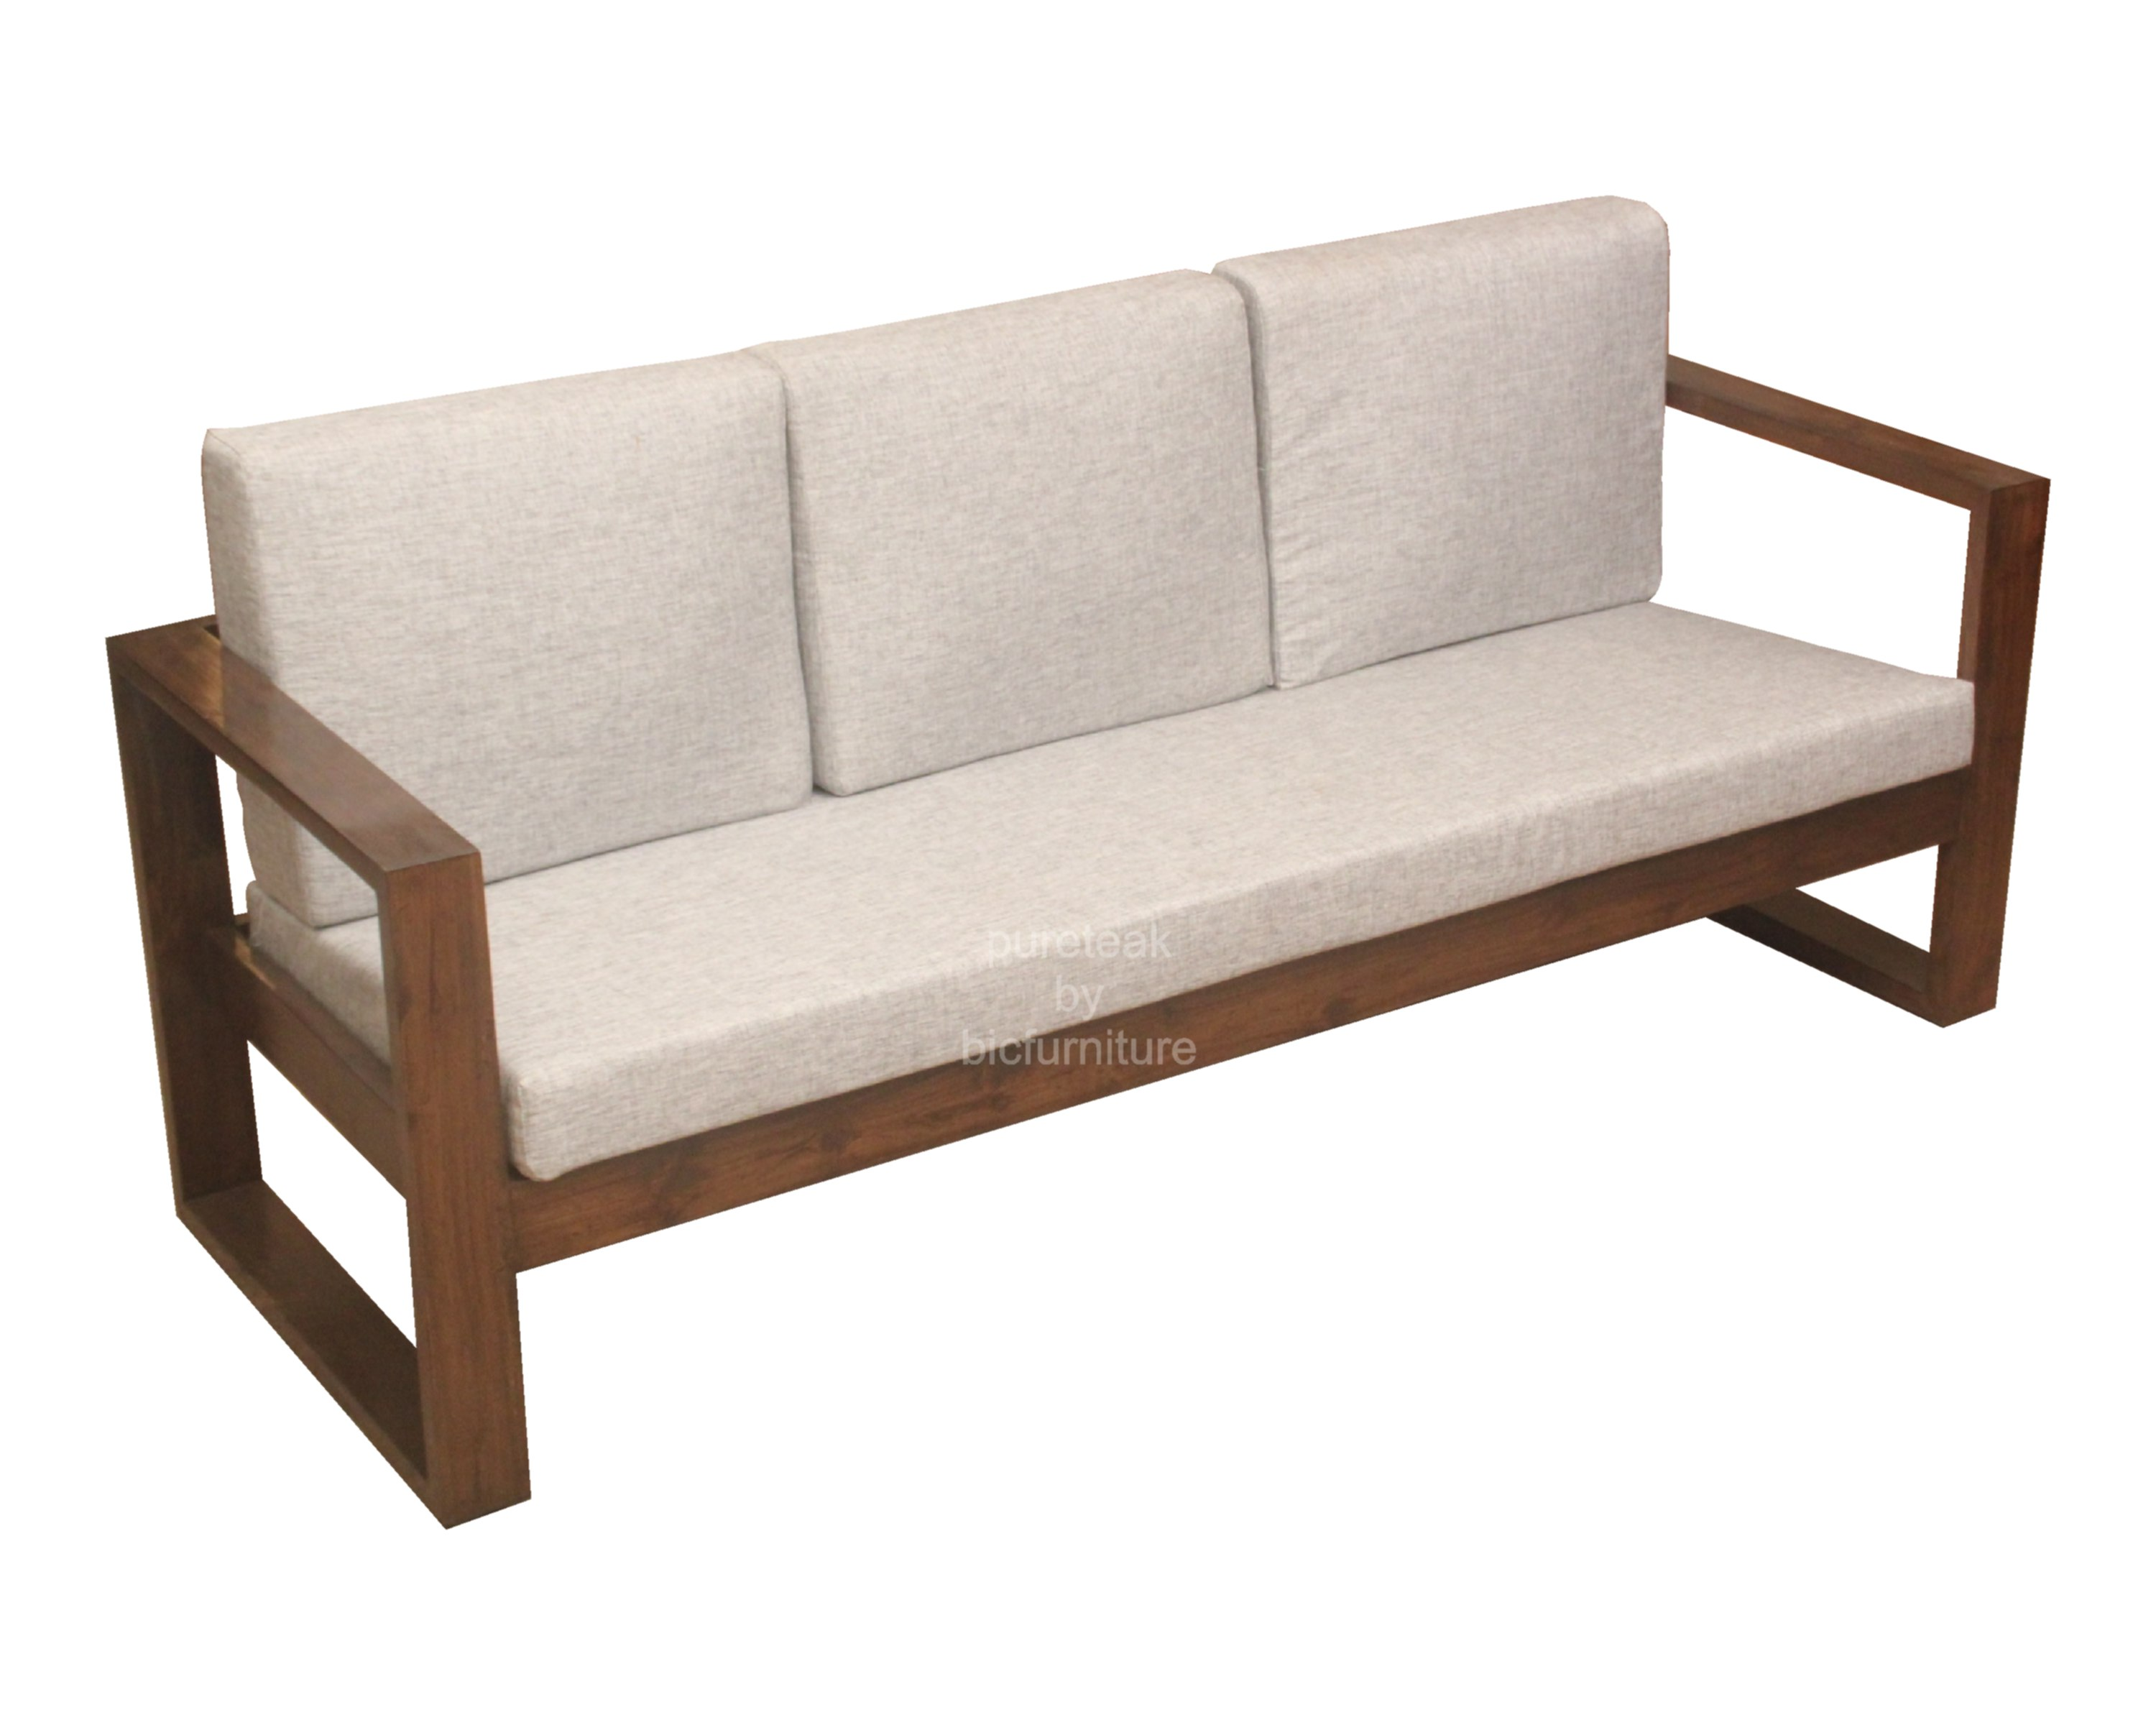 simple sofa wood sofa set price wooden sofa set manufacturers 420